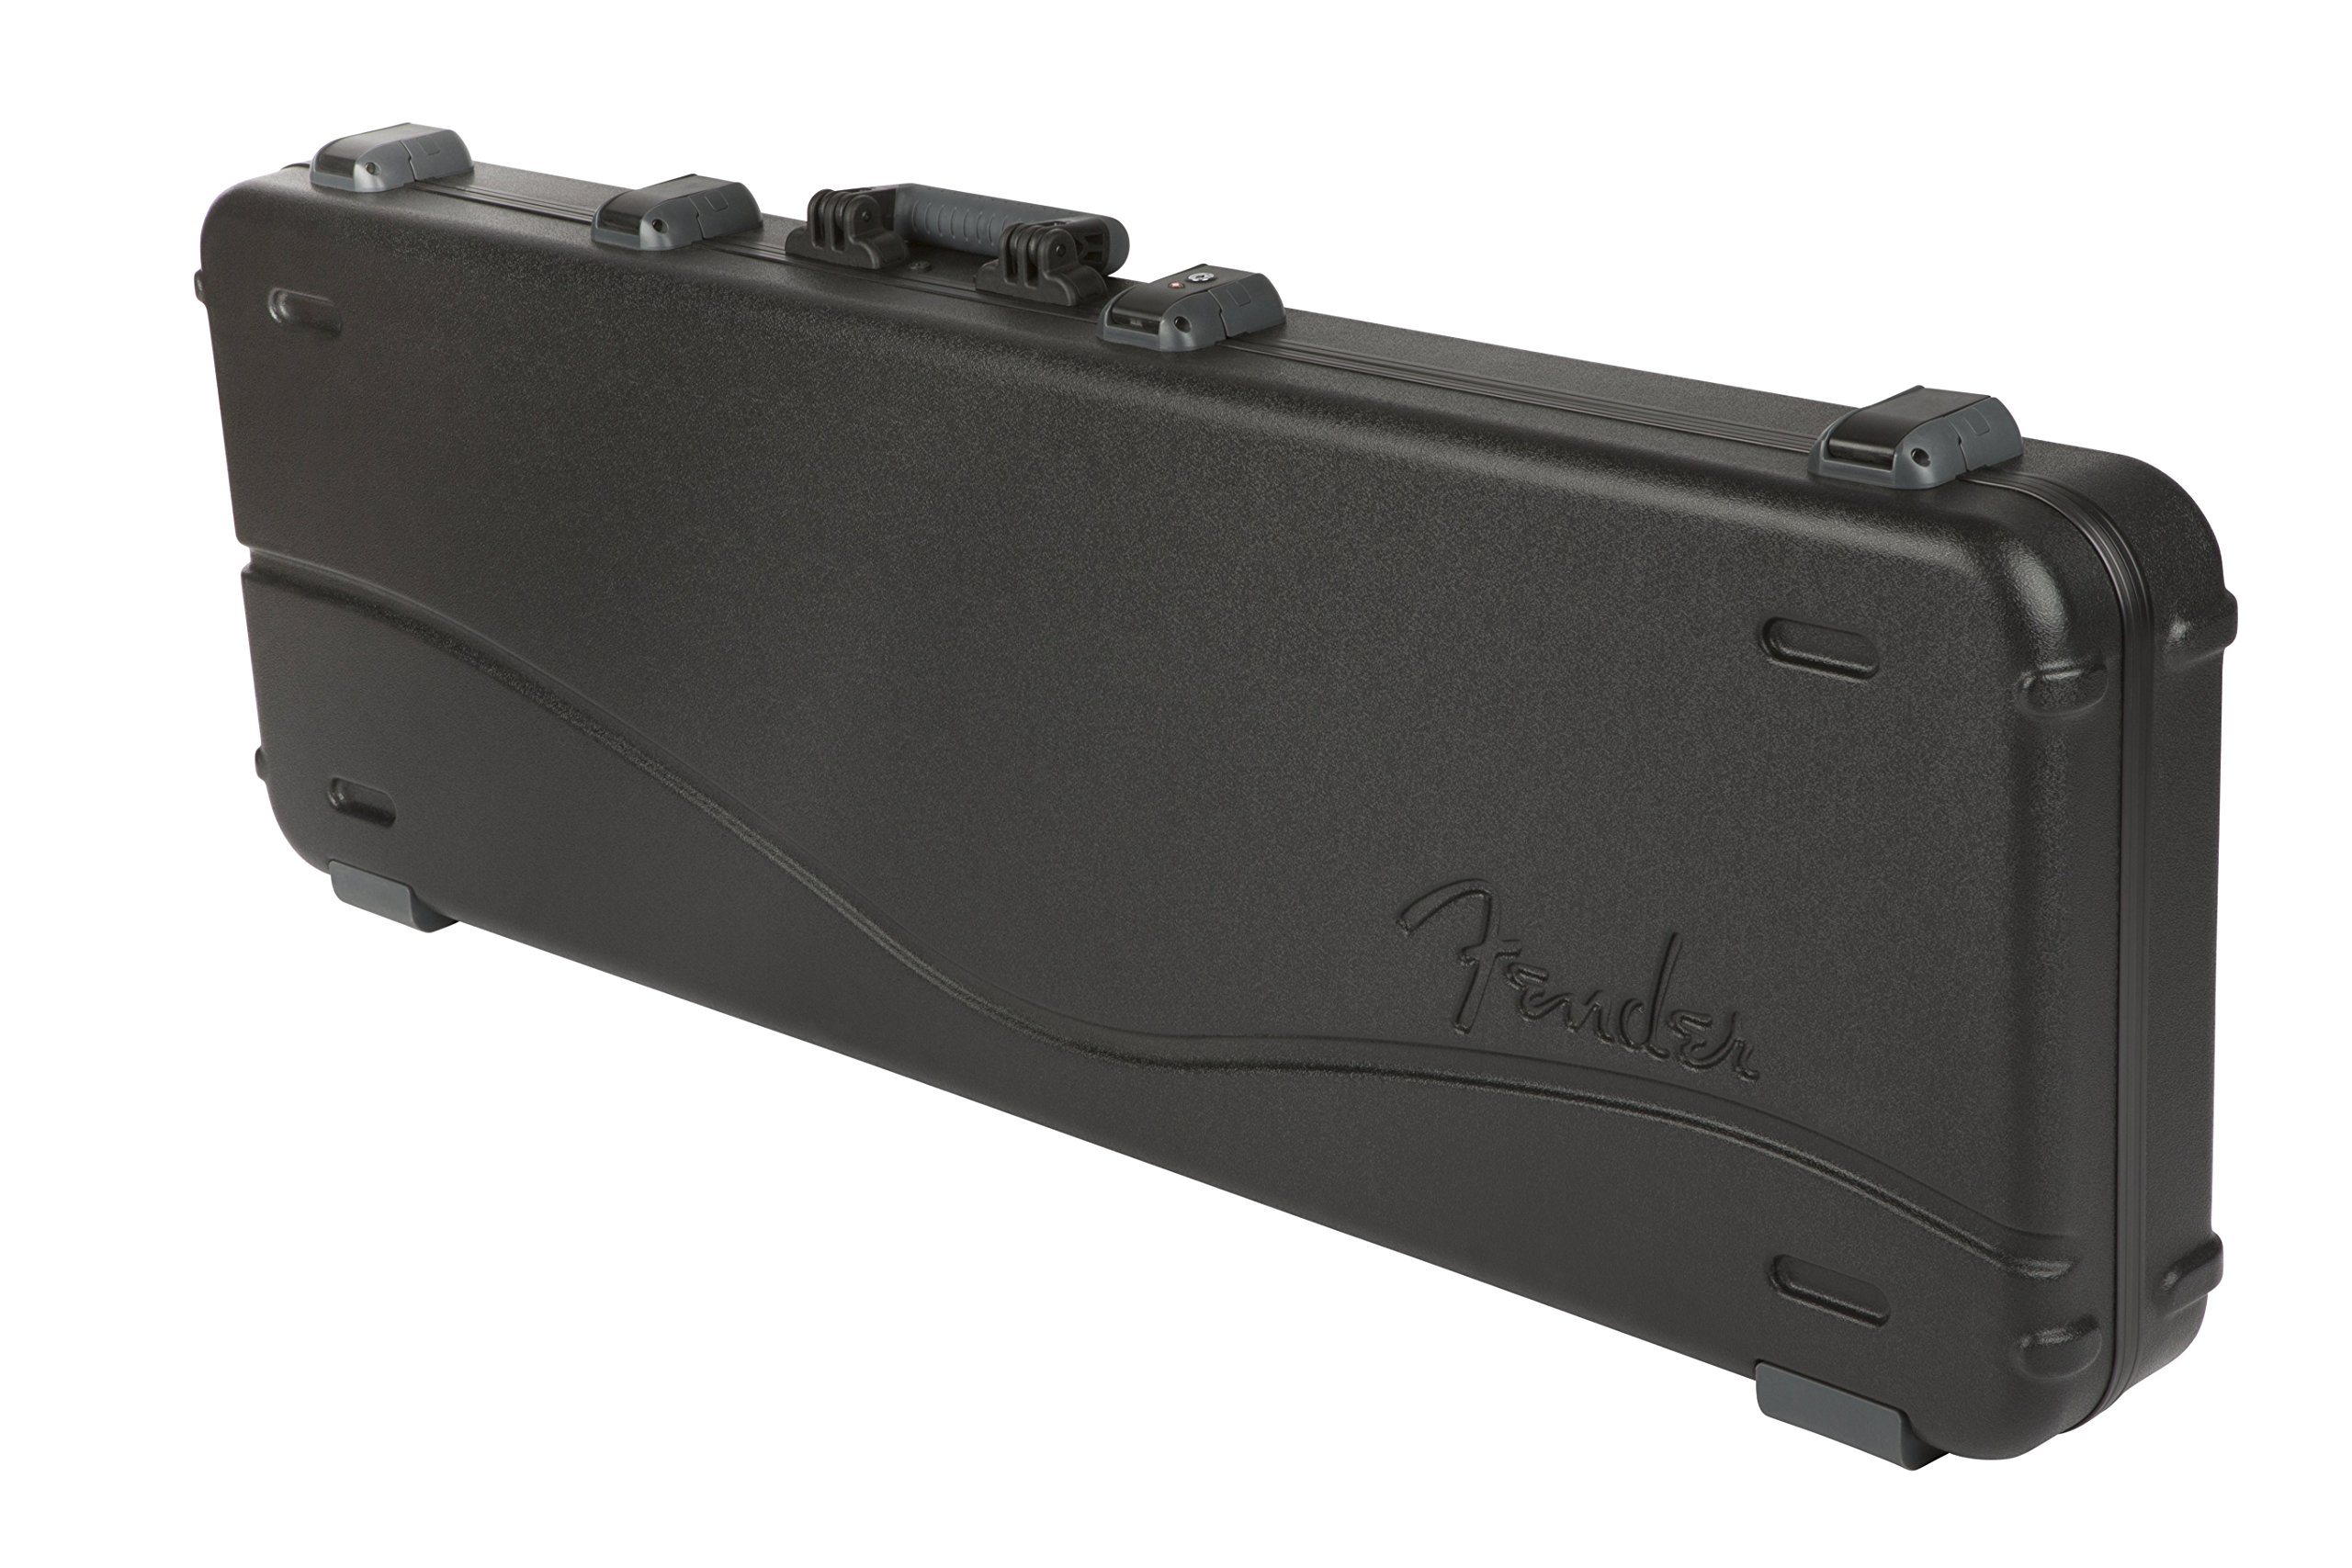 Fender Deluxe Molded Jazz and Precision Electric Bass Guitar Case - Black by Fender